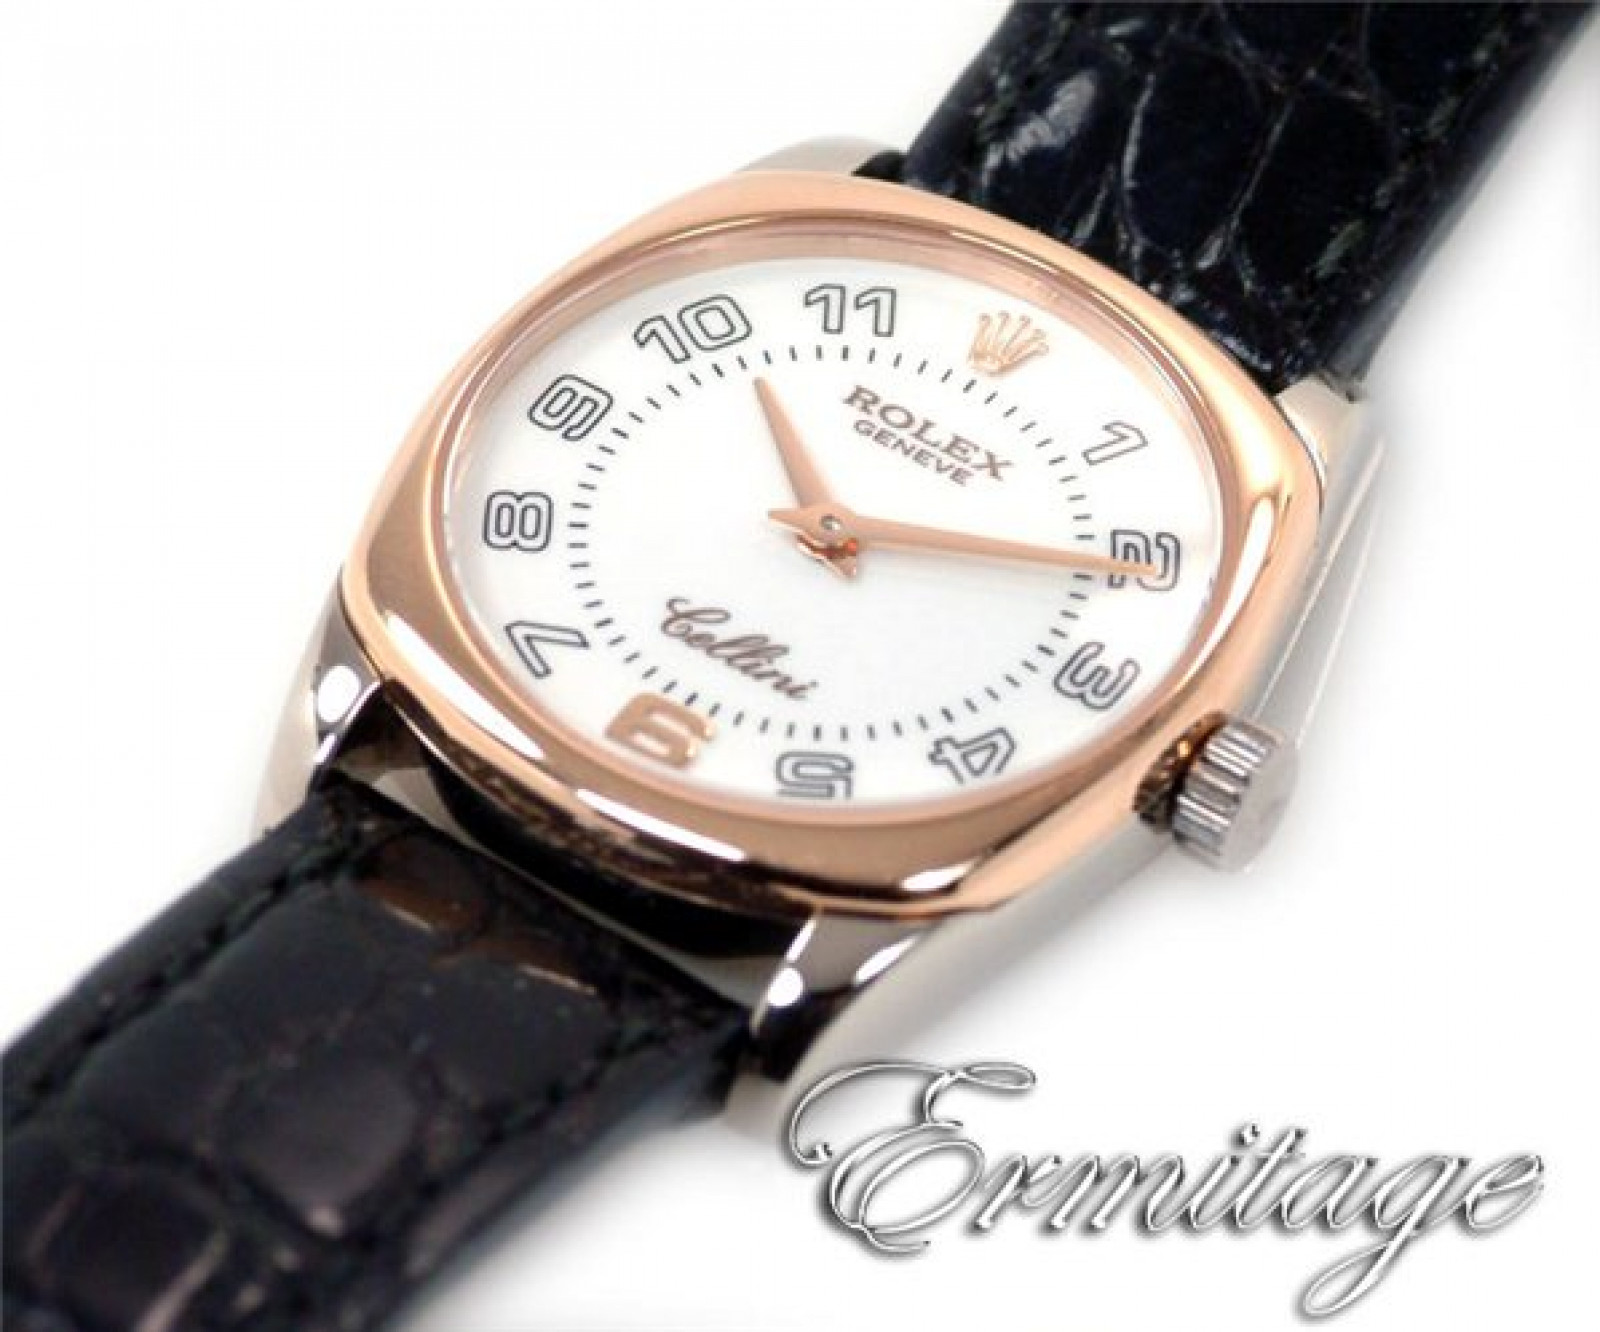 Pre-Owned Rolex Cellini 6229 Gold Year 2008